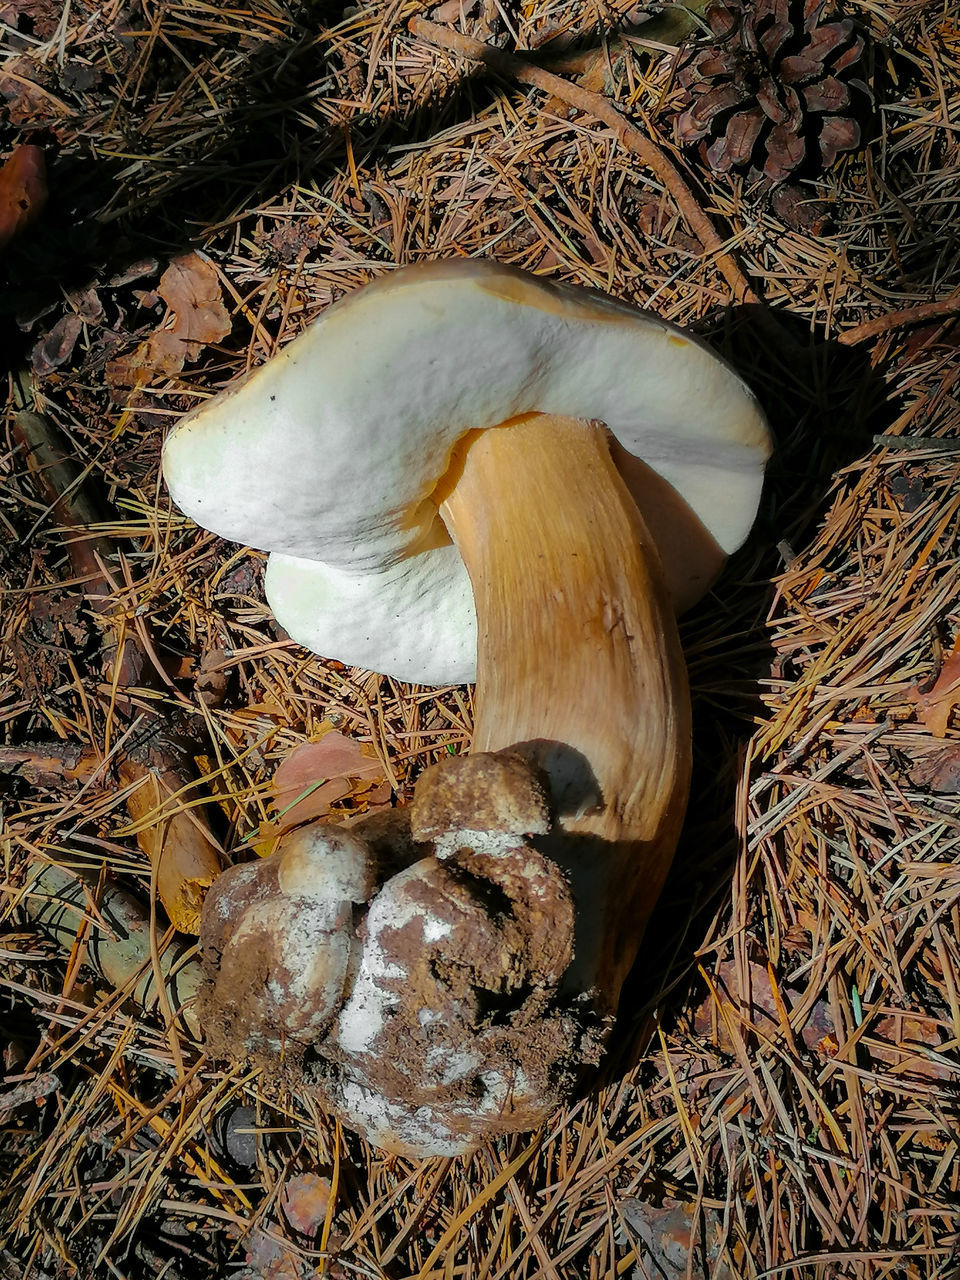 HIGH ANGLE VIEW OF MUSHROOMS IN FIELD